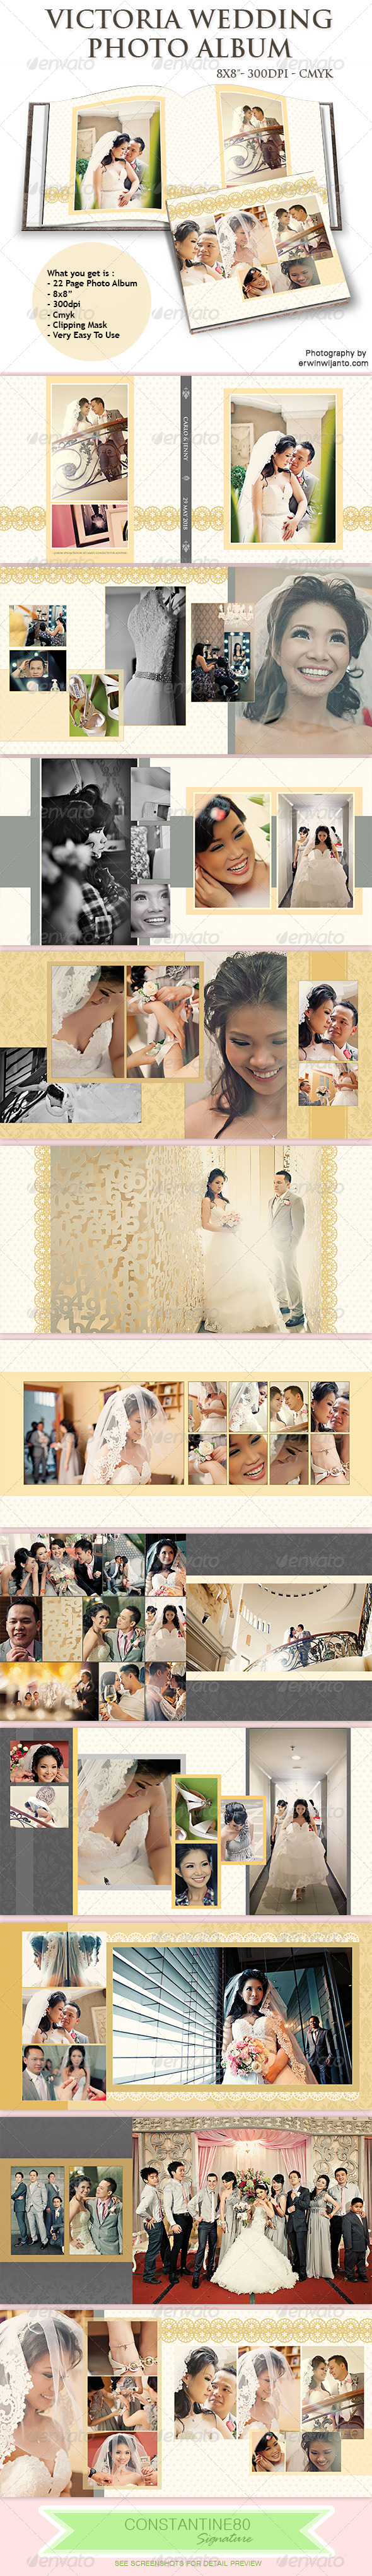 Victoria Wedding Photo Album - Photo Albums Print Templates